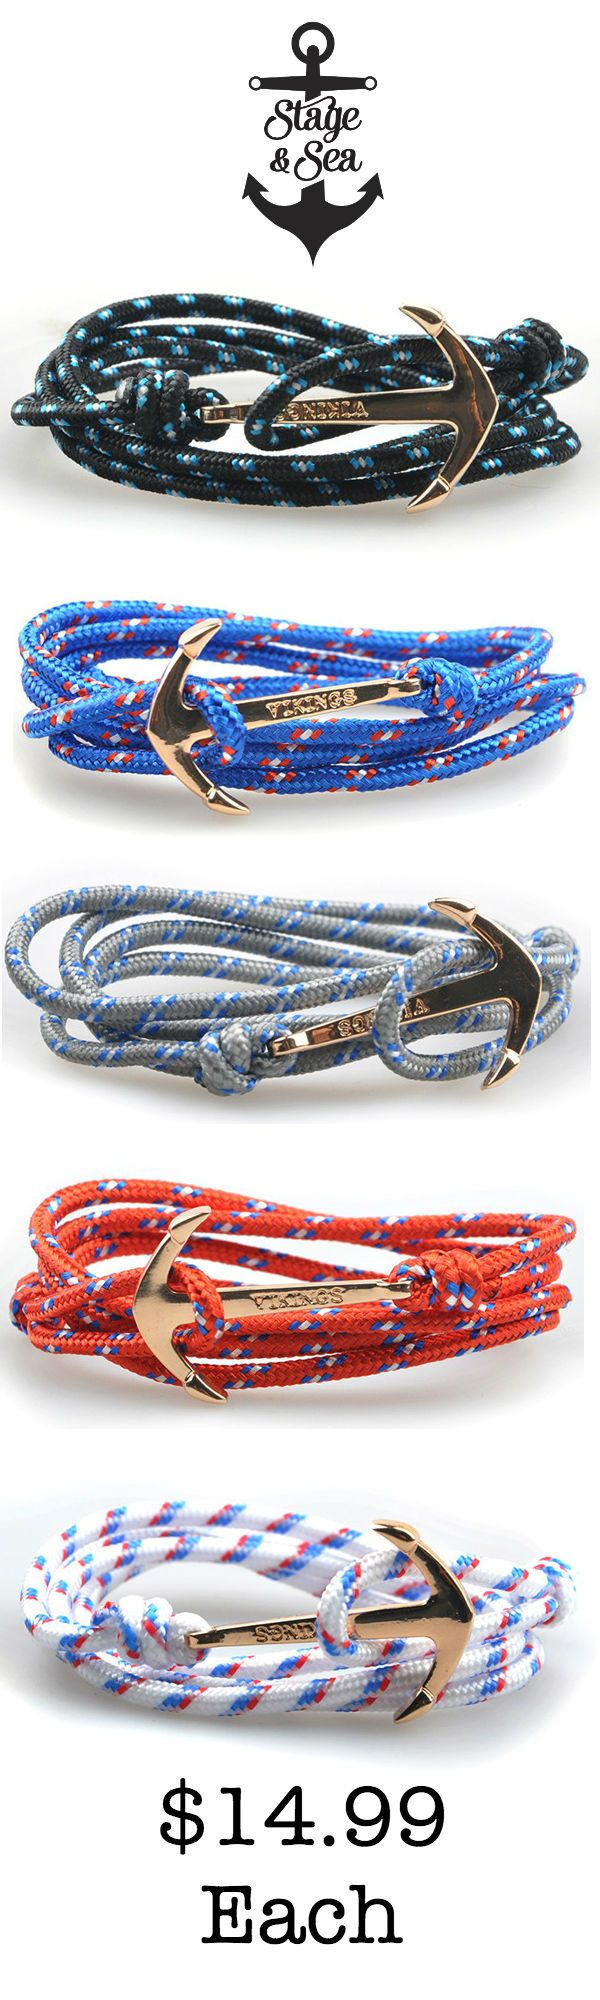 The Anchor bracelet series  from Stage and Sea // Mens fashion accessories inspired by the ocean // The Anchor bracelet is made of a parachute cord strap combined with a zinc alloy anchor. The strap is adjustable, so one sizes fits all. Inspired by the ocean and outdoors, this bracelet is suitable for all occasions //